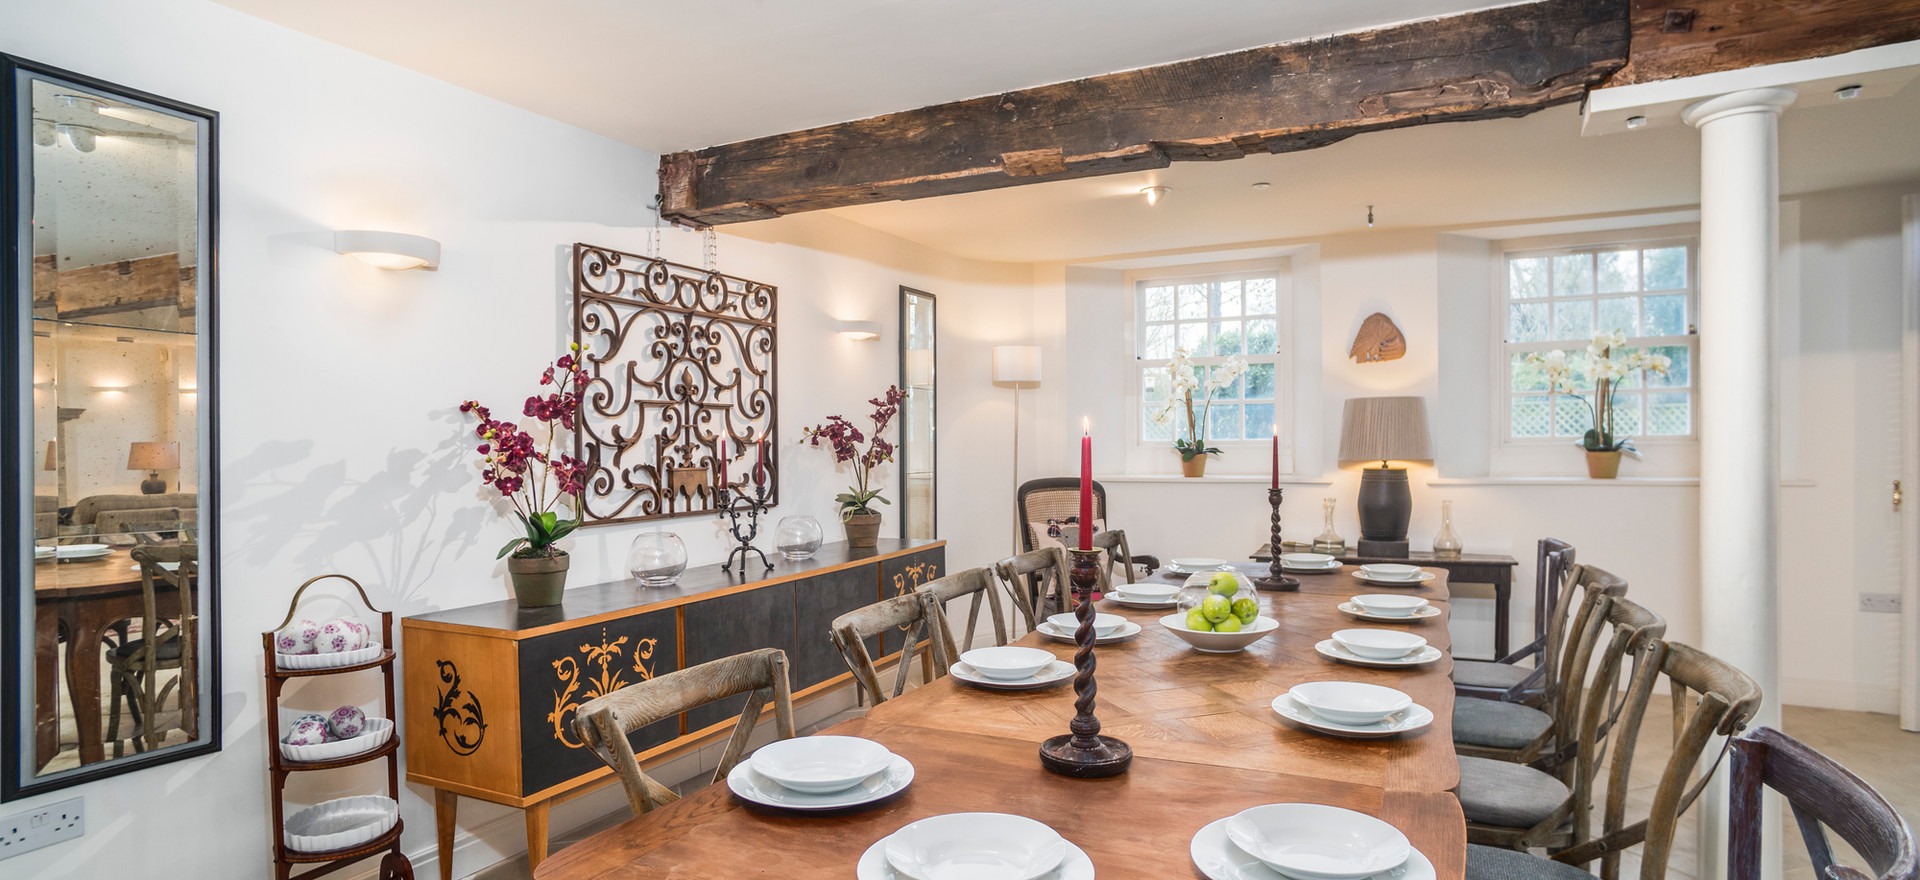 The antique, extending dining table seats up to 16 guests